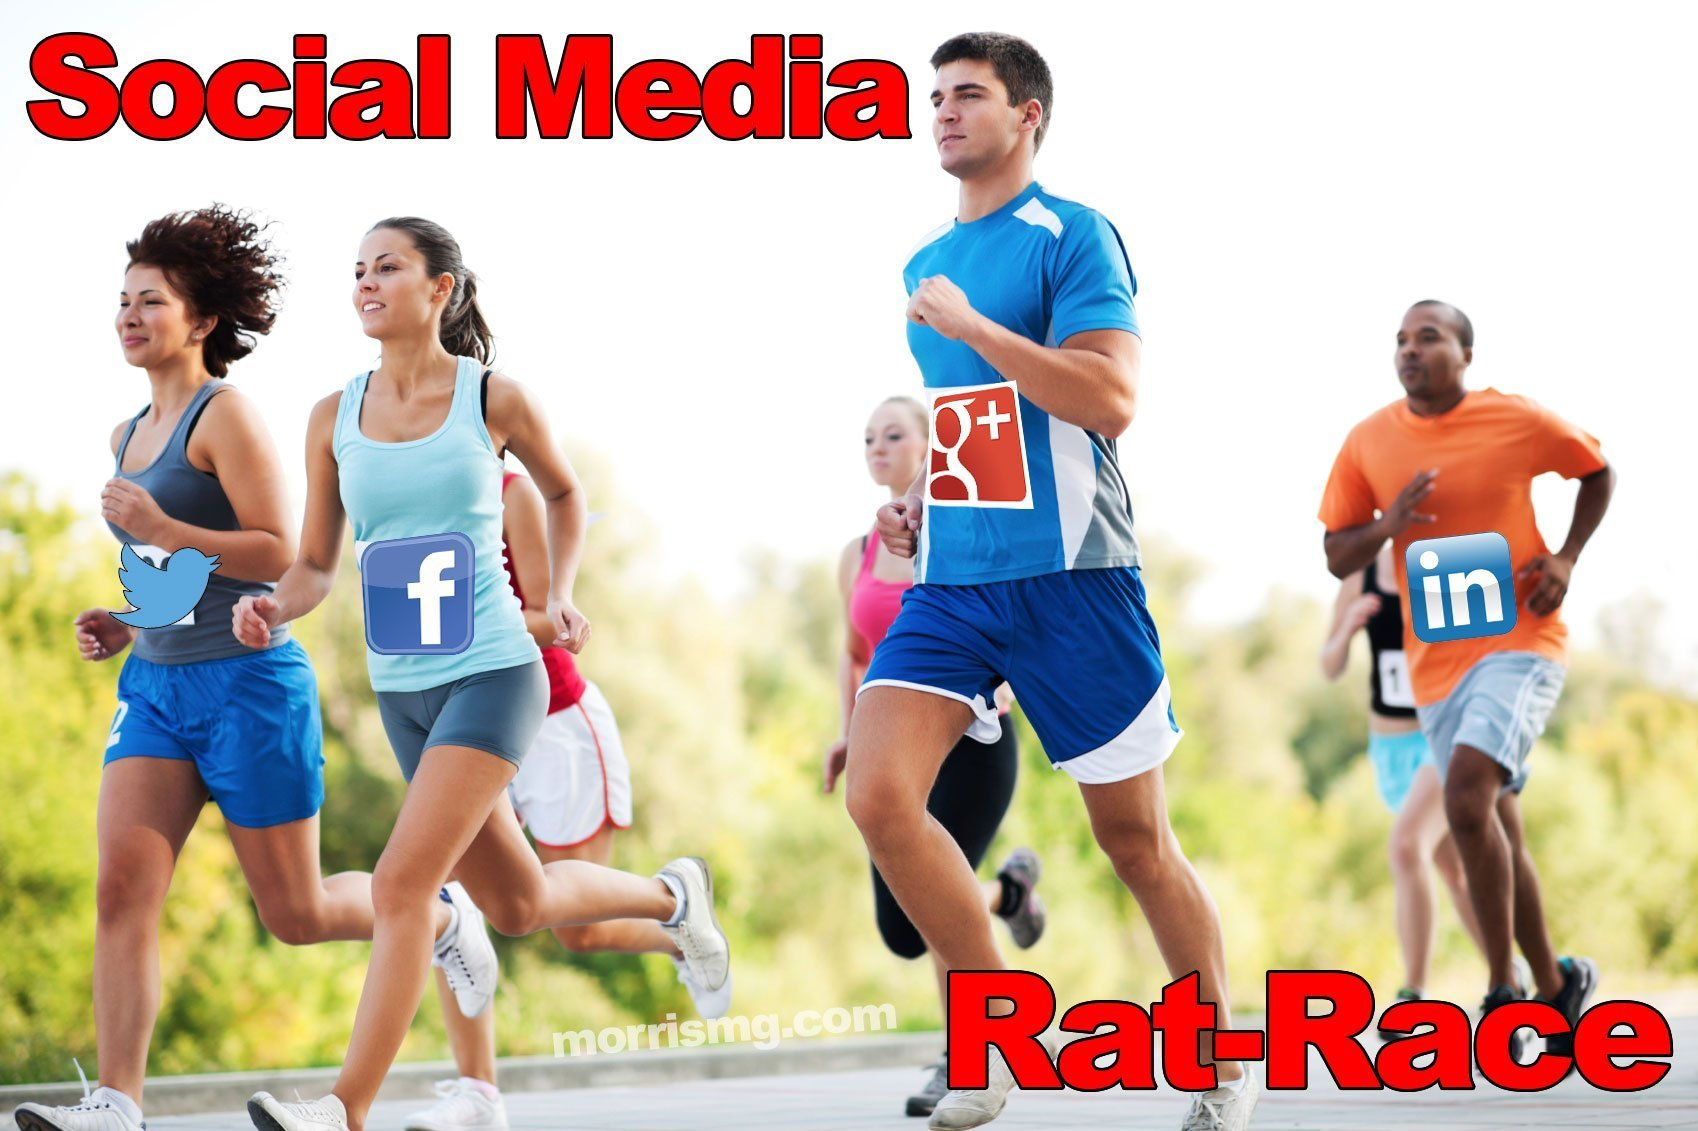 Winning the Social Media Rat race